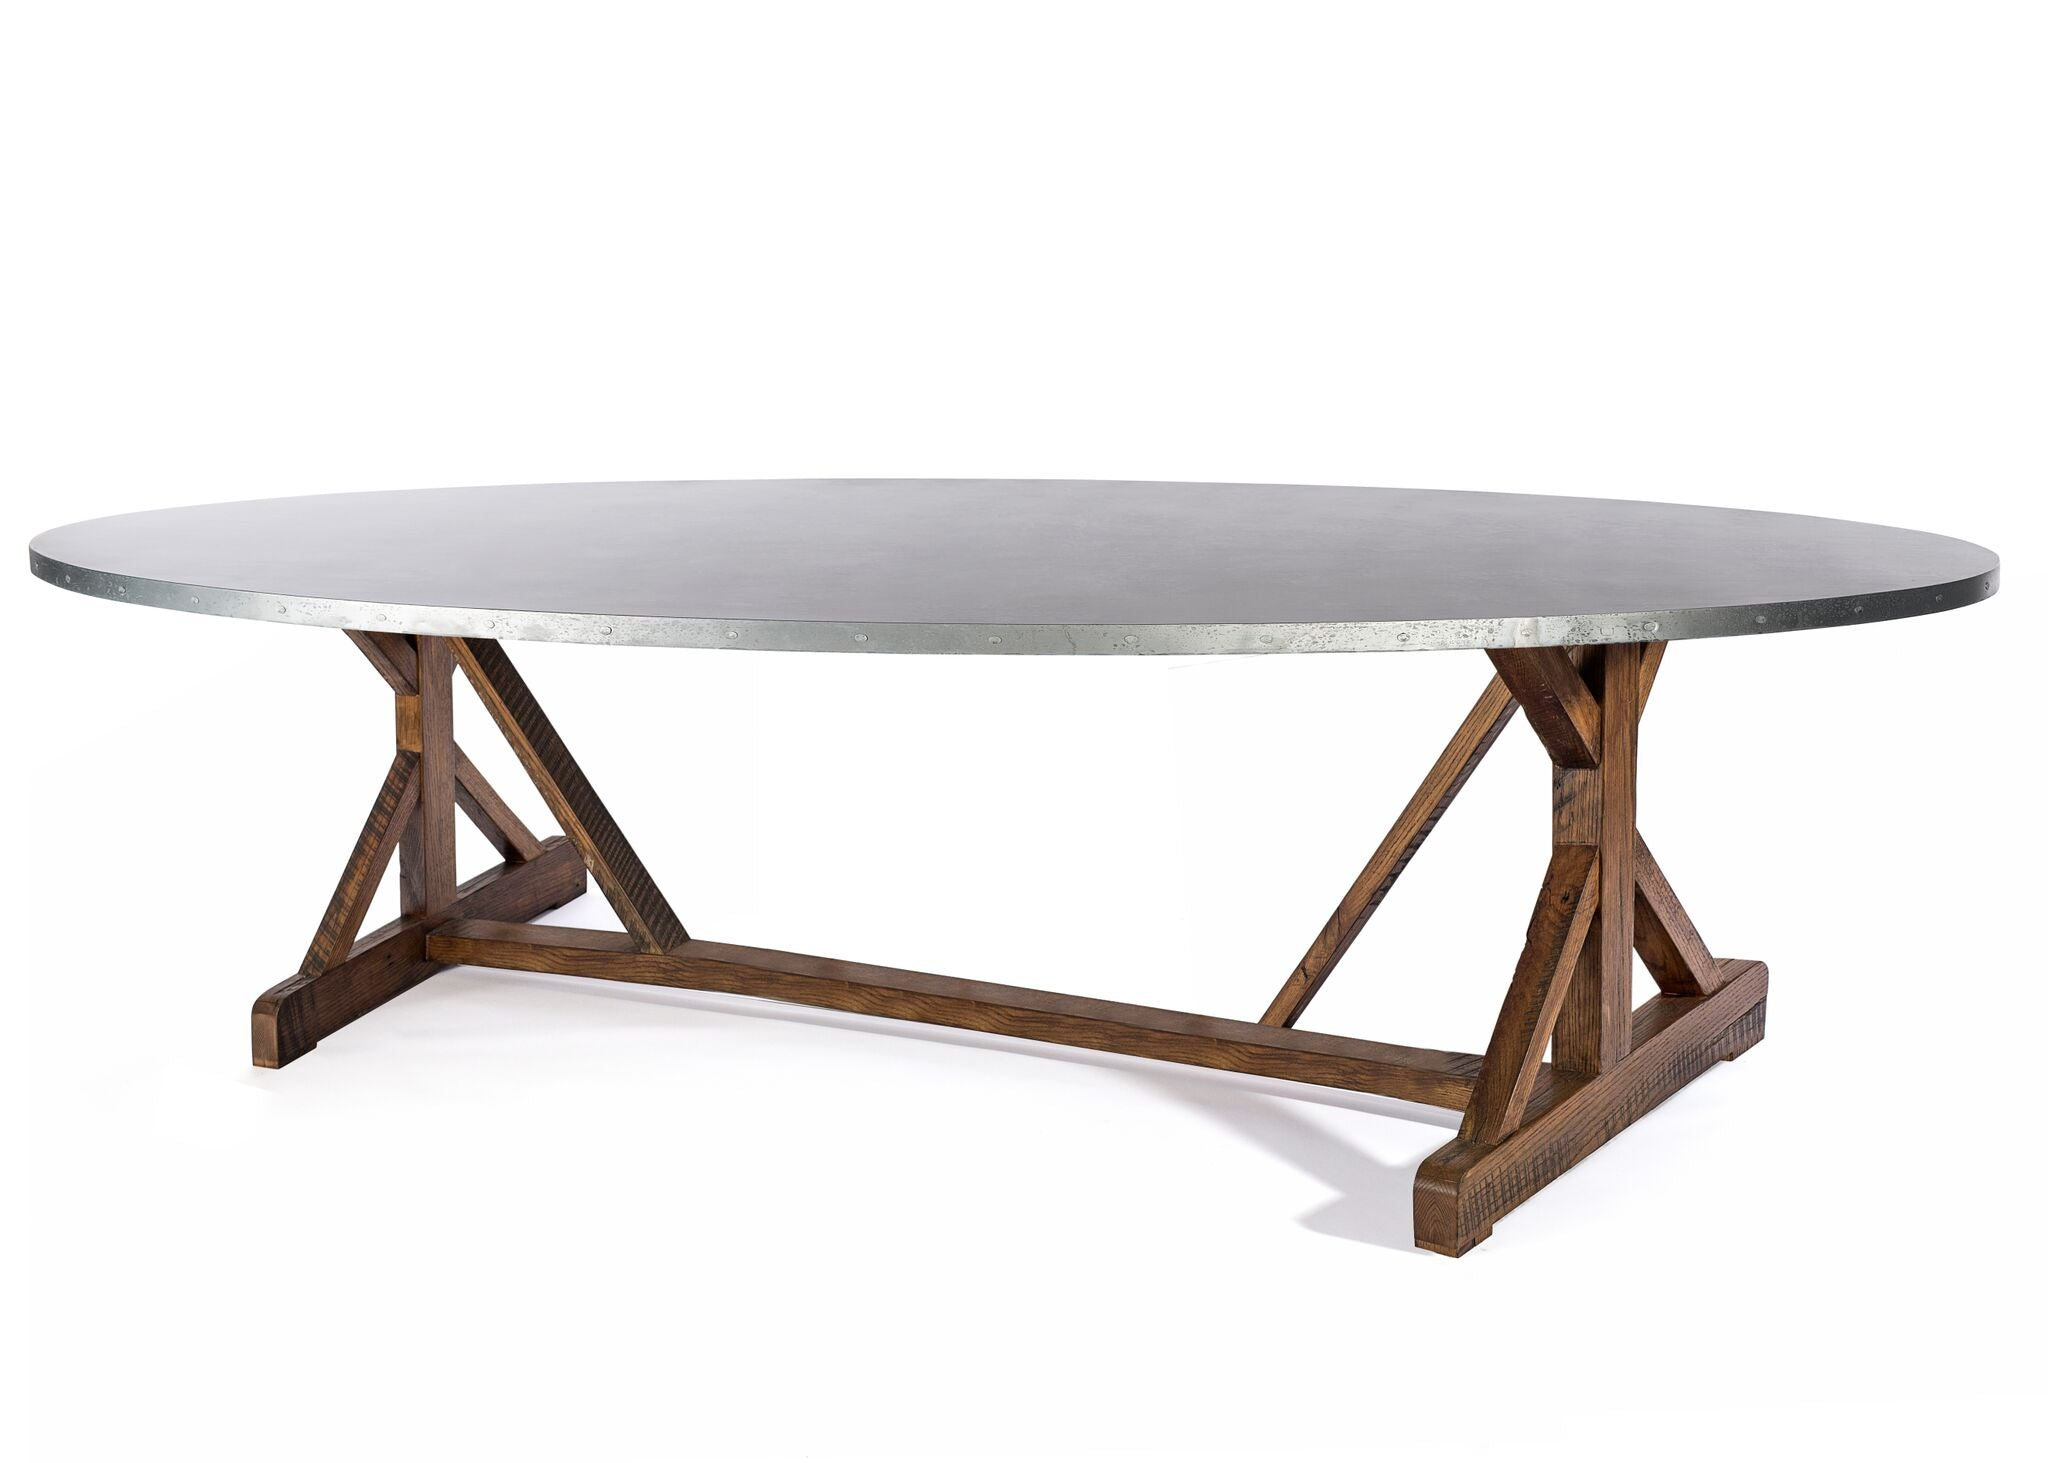 "Zinc Oval Tables | French Trestle Table | CLASSIC | Natural Reclaimed Oak | CUSTOM SIZE L 72 W 39 H 30 | 1.5"" Standard 